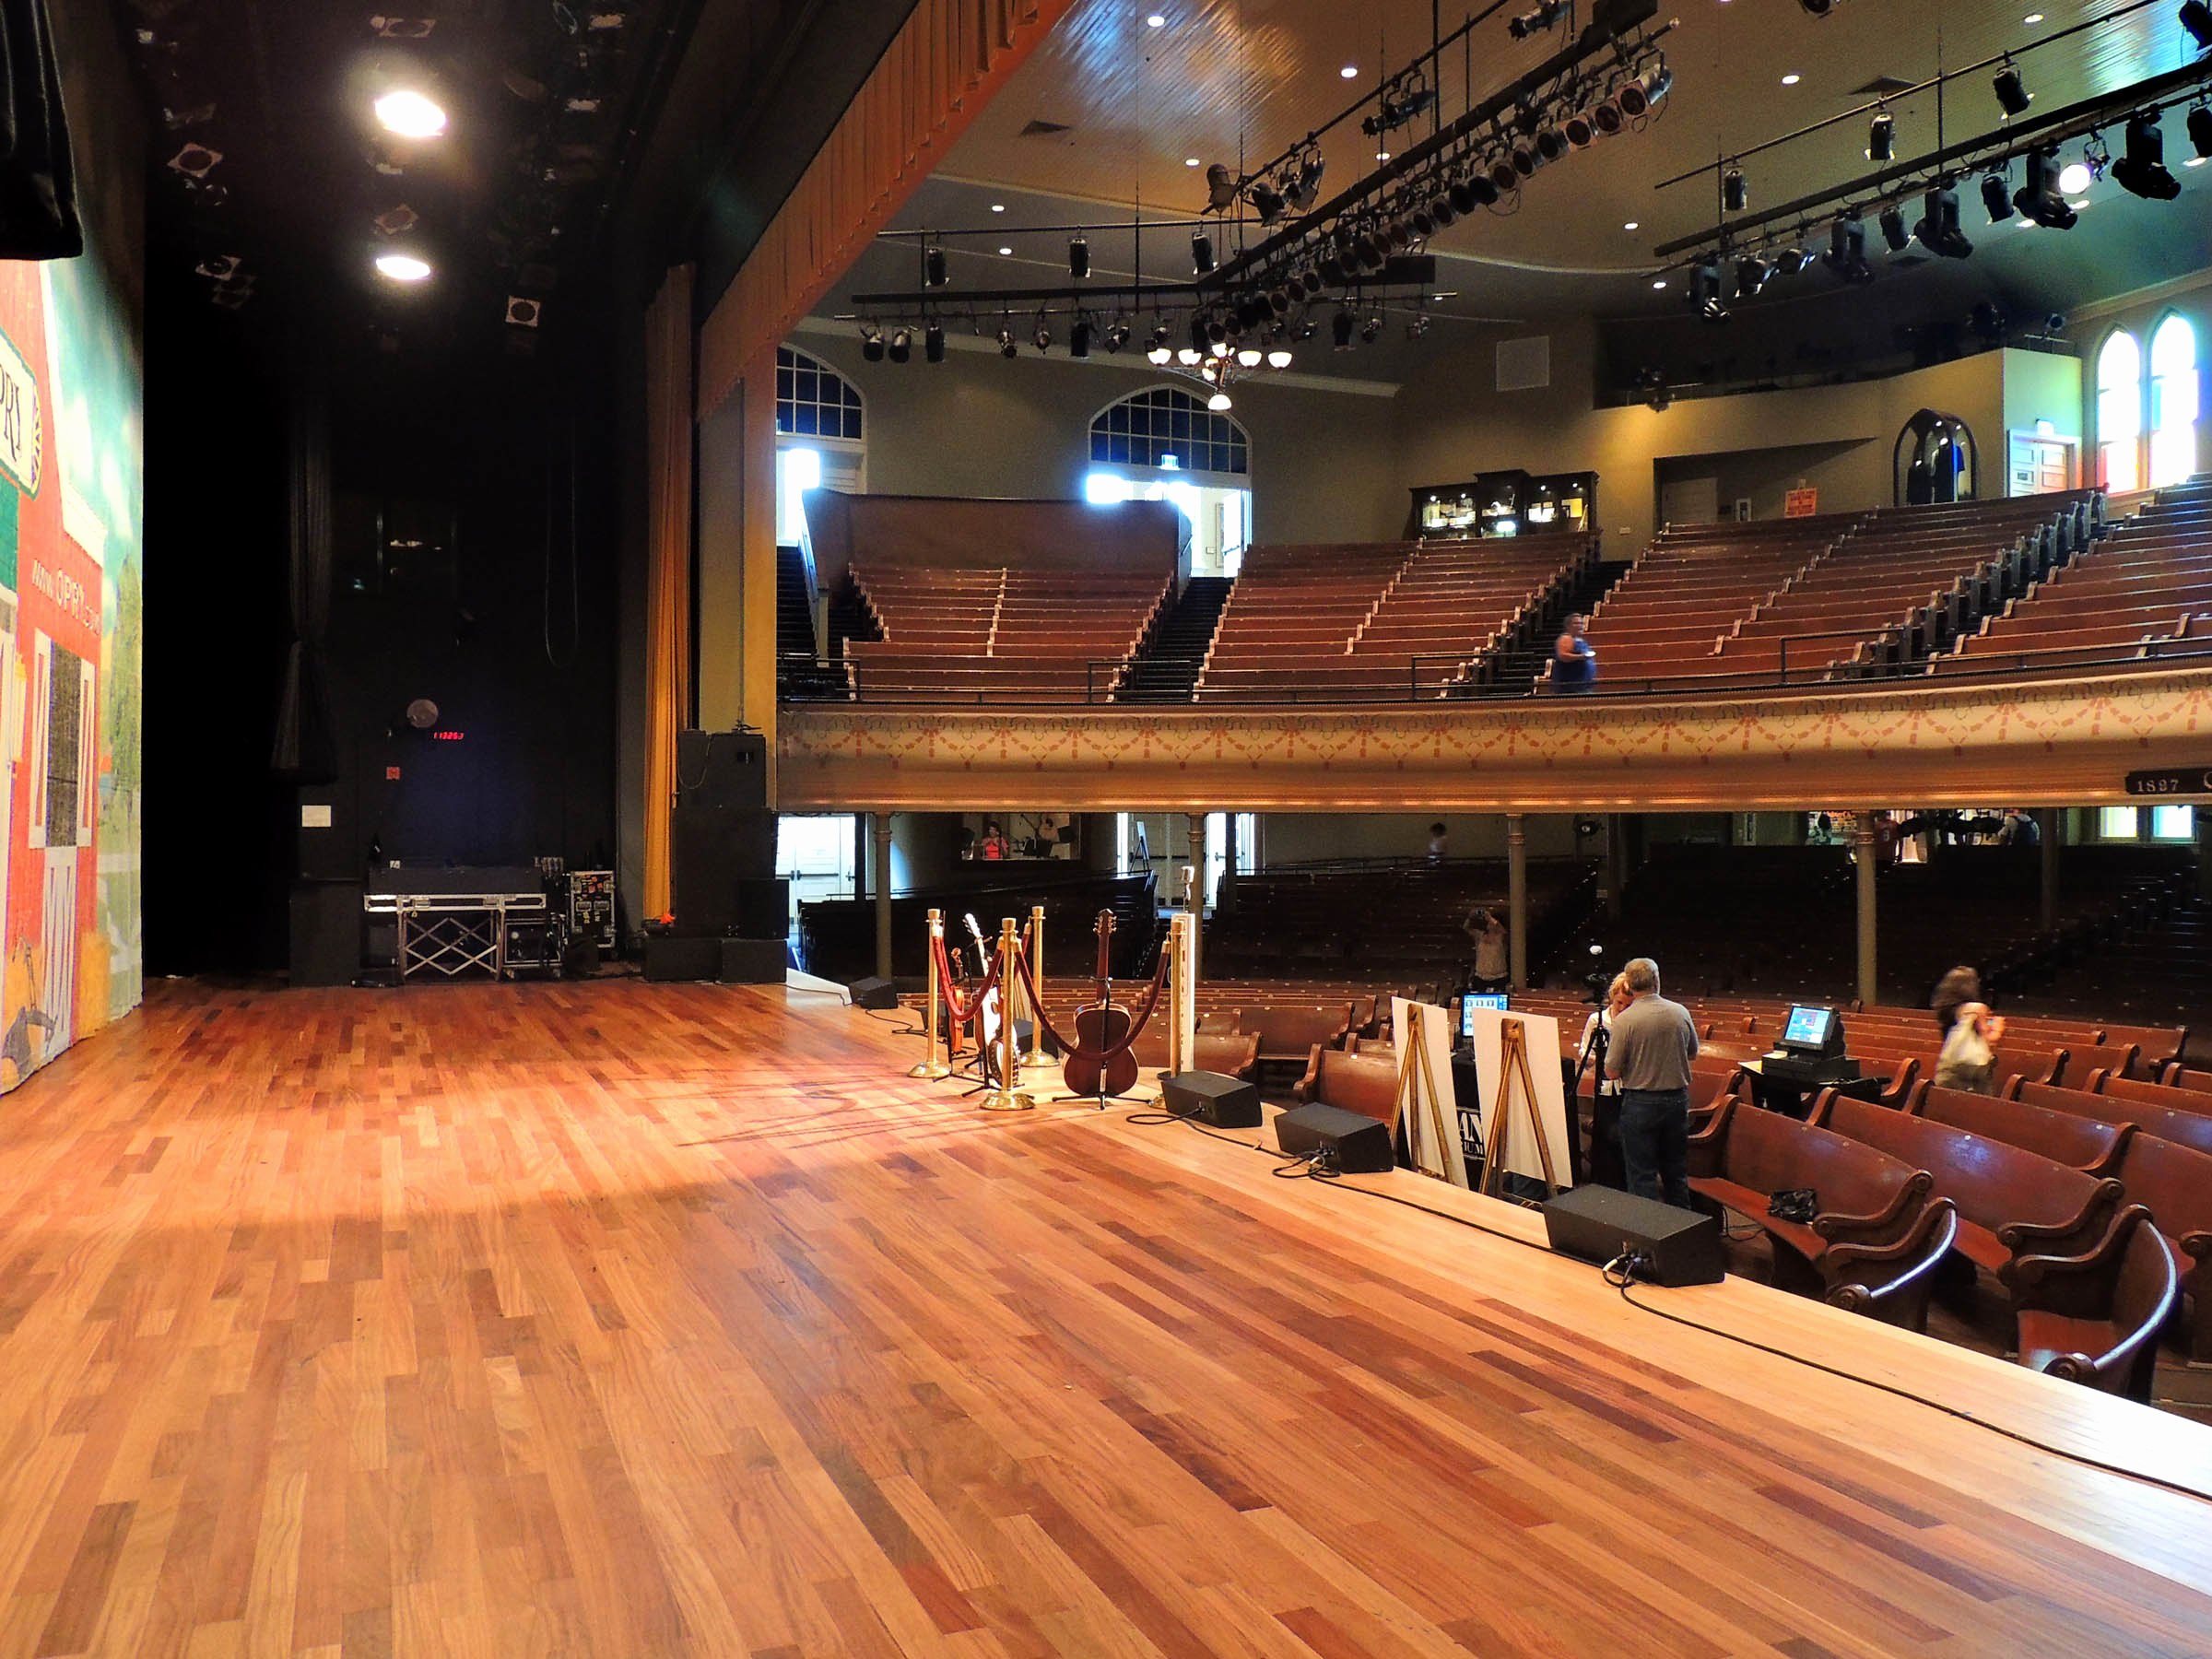 Ryman Auditorium Layout Beautiful What to Know when Visiting Nashville's Beloved Ryman